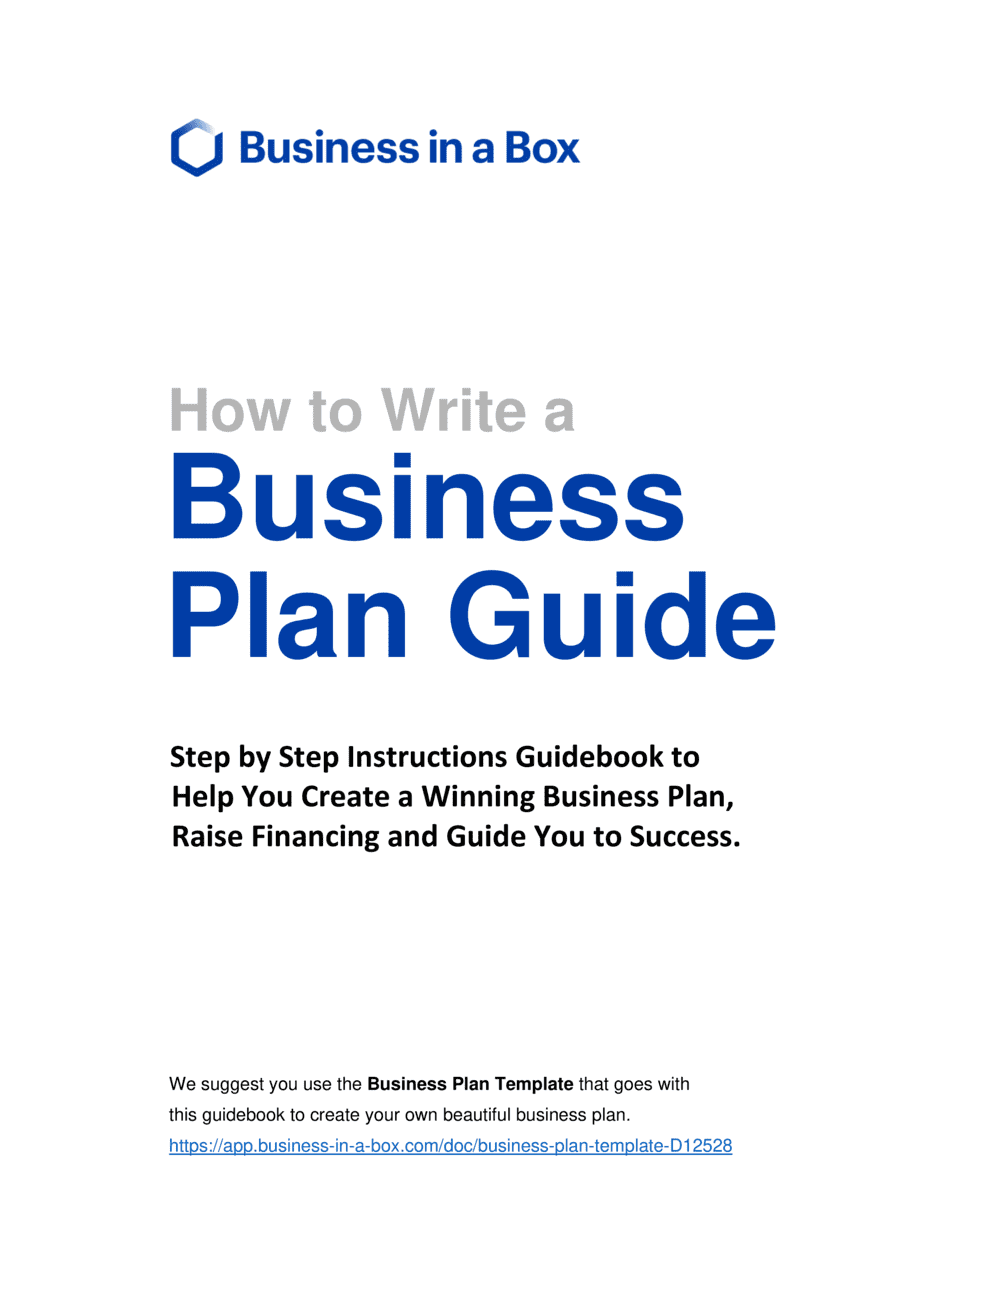 Business-in-a-Box's How to Write a Business Plan Guidebook